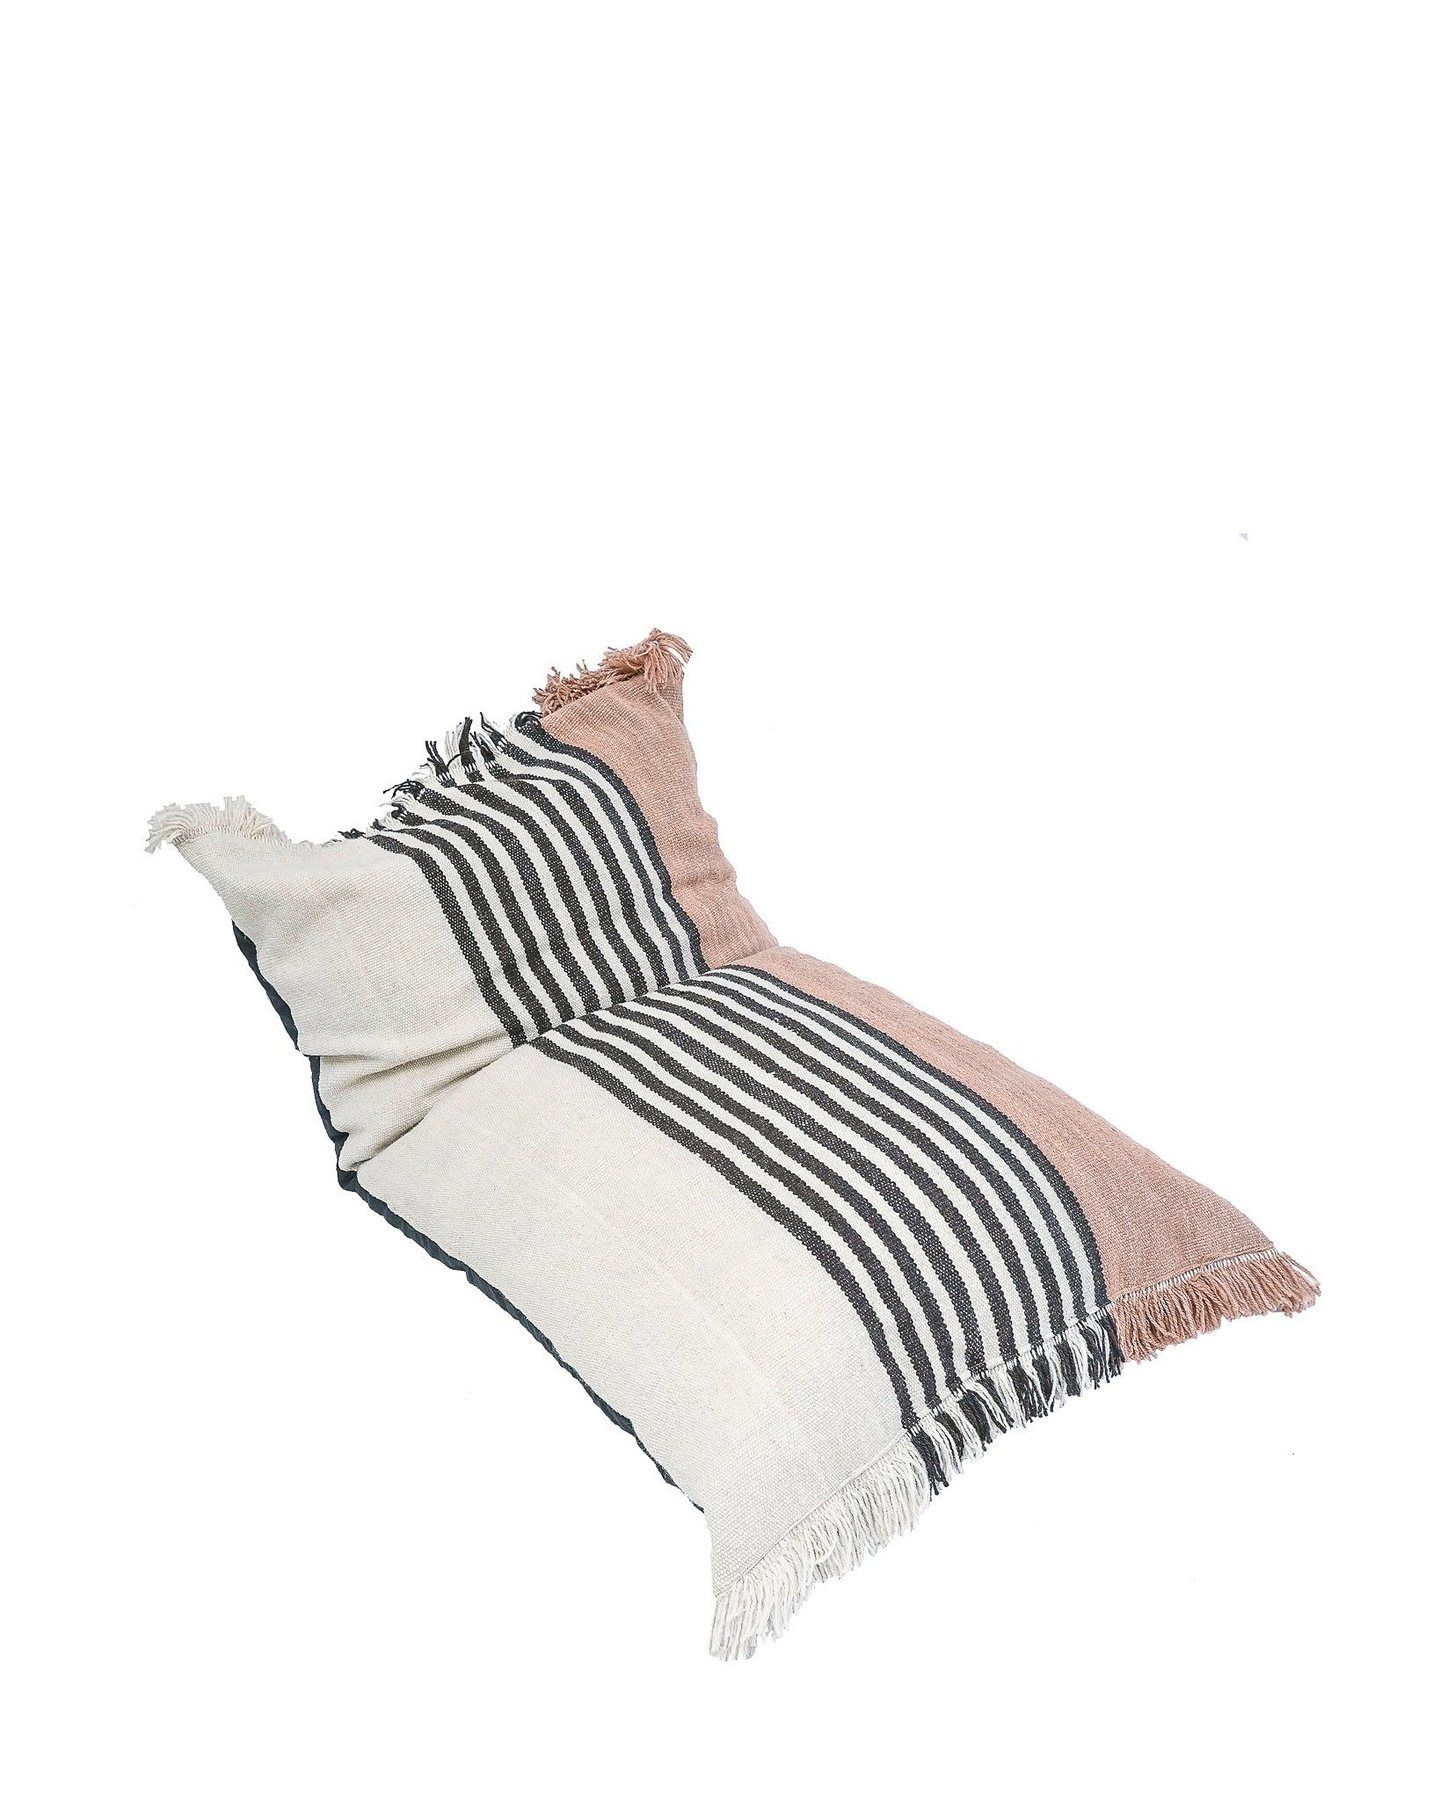 Pillows & Throws > Floor Cushion  Blush Sendero Handwoven